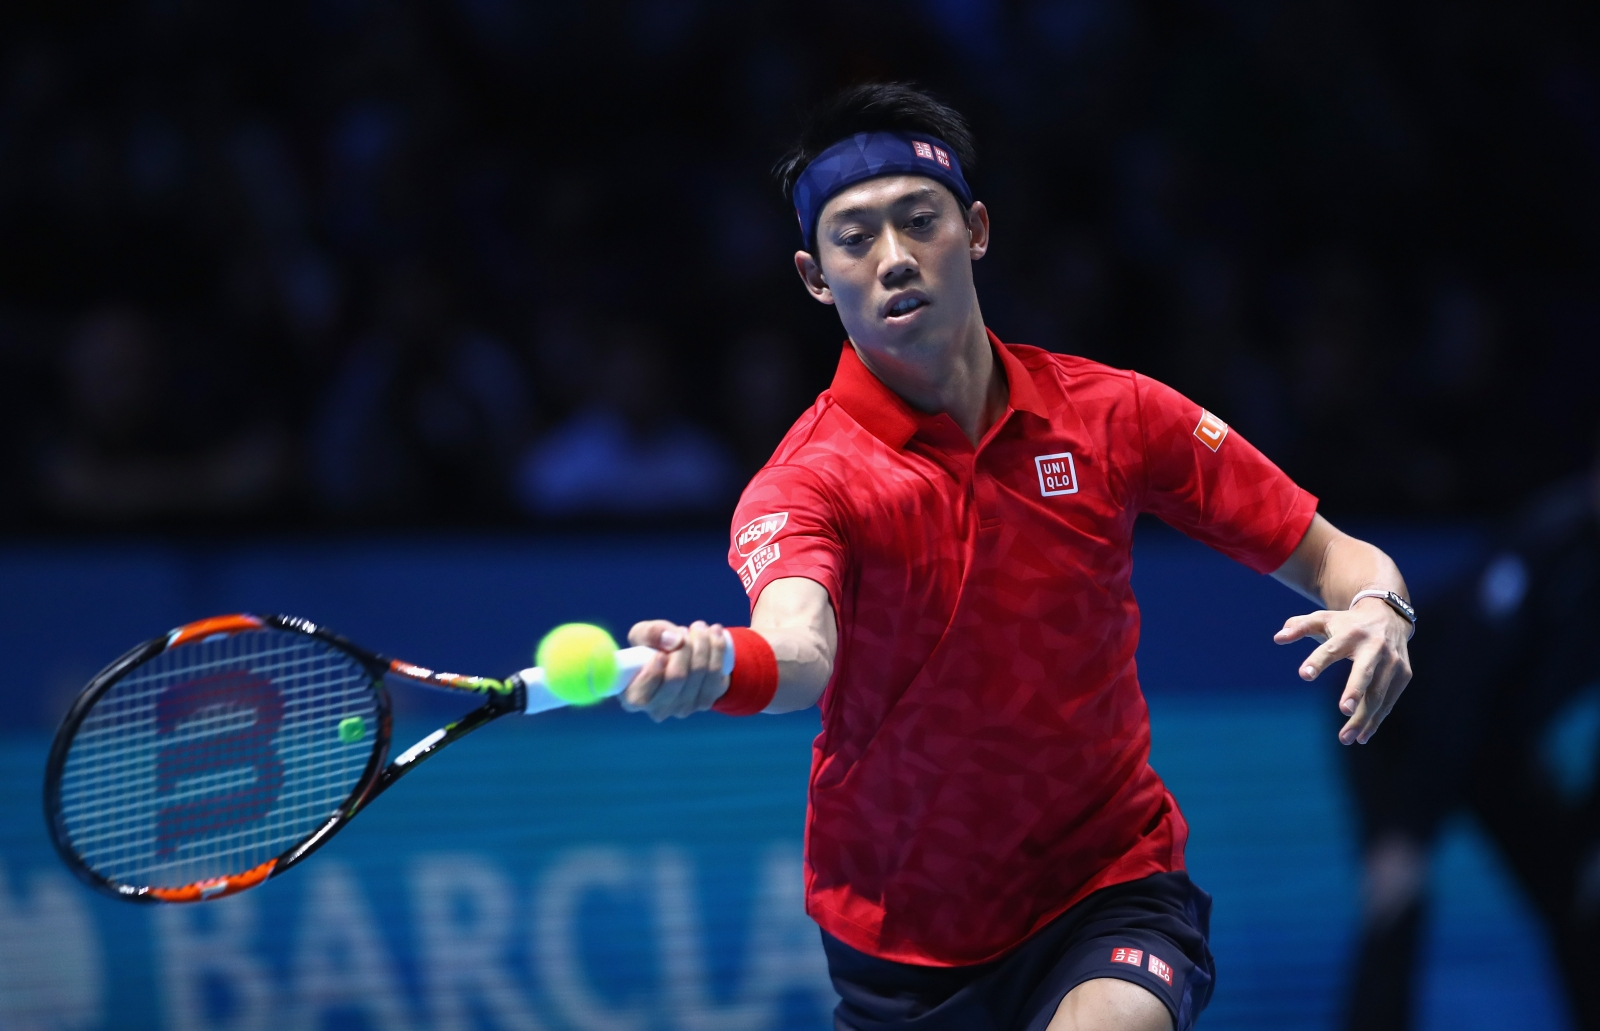 Barclays atp world tour finals 2021 djokovic vs nishikori betting denmark v germany betting preview